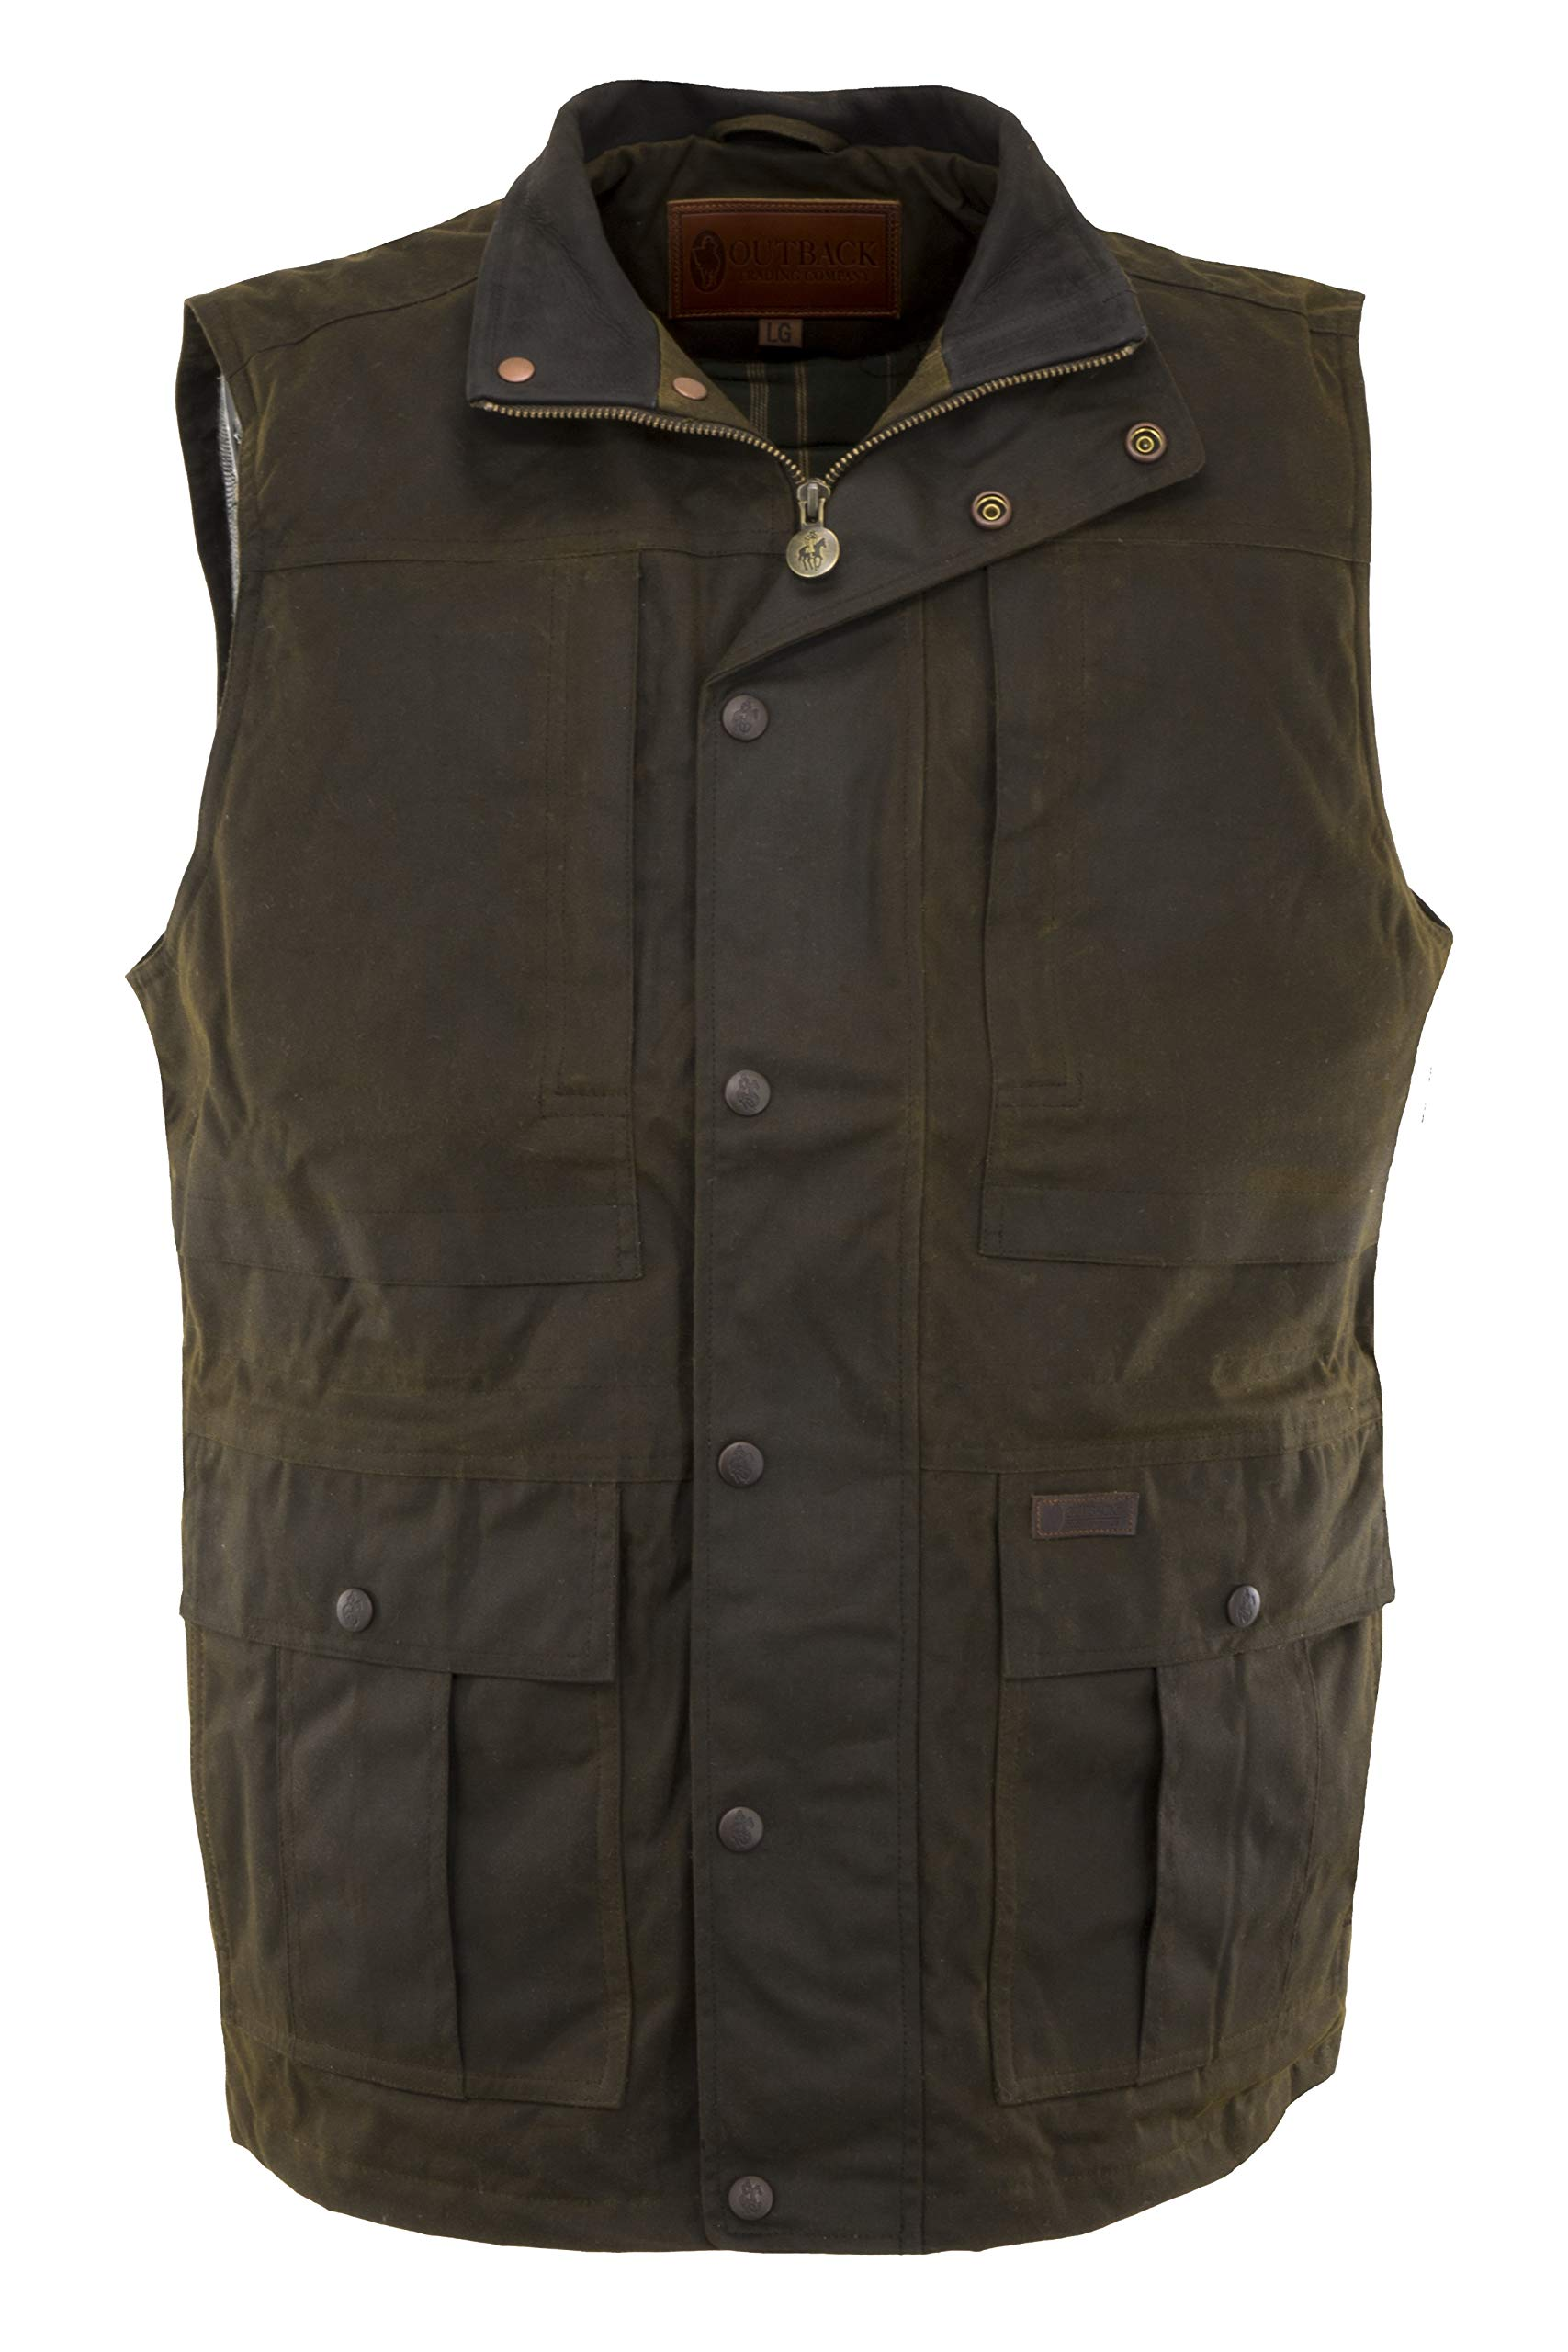 Outback Trading Company Deer Hunter Oilskin Vest, Bronze, 2XL by Outback Trading